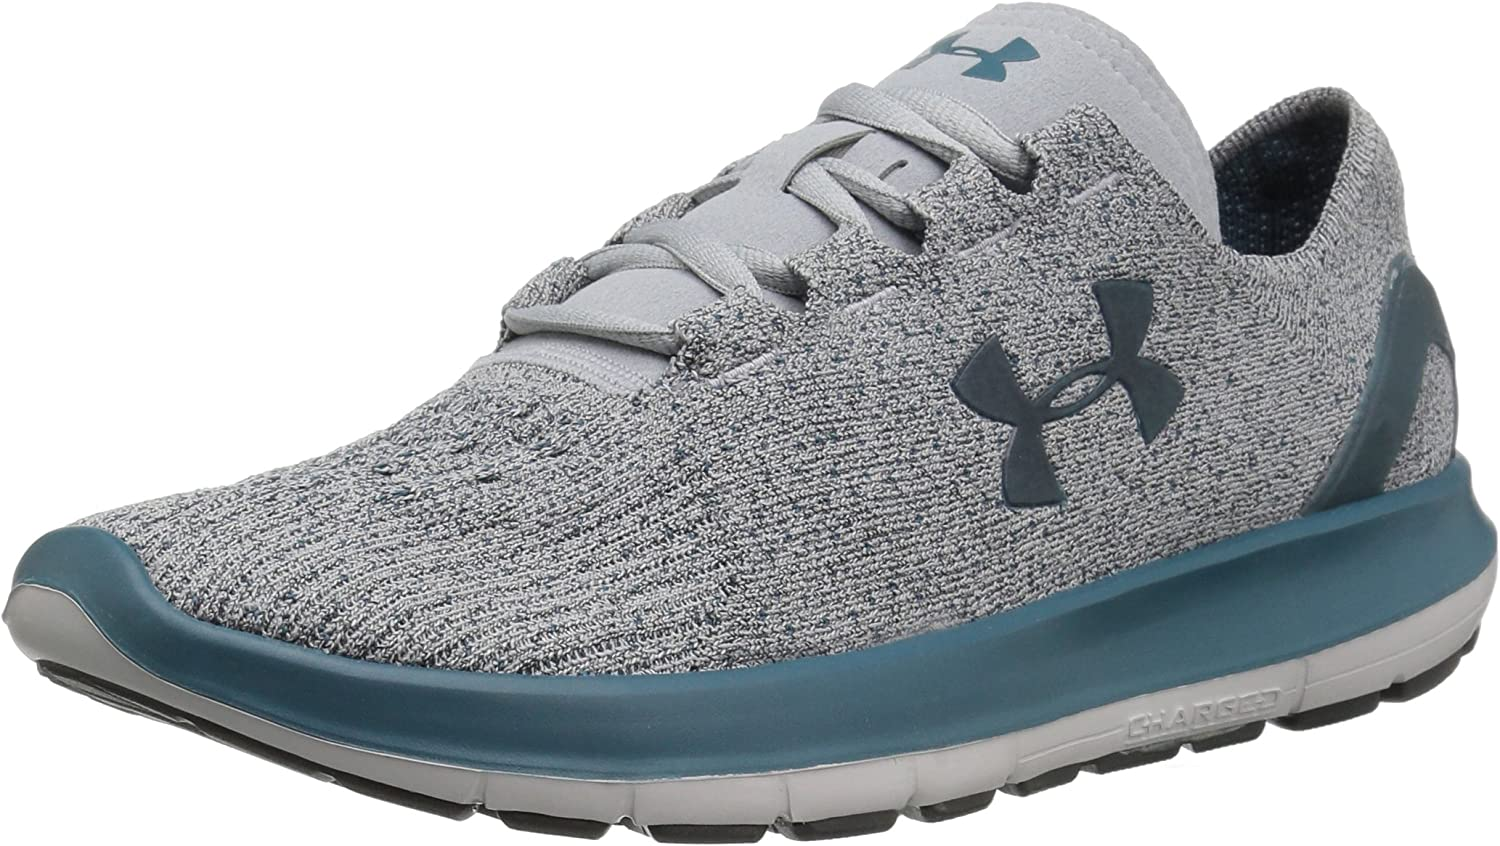 Under Armour Women s Atlantic Dune Running Shoe, Overcast Gray Glacier Gray Marlin Blue